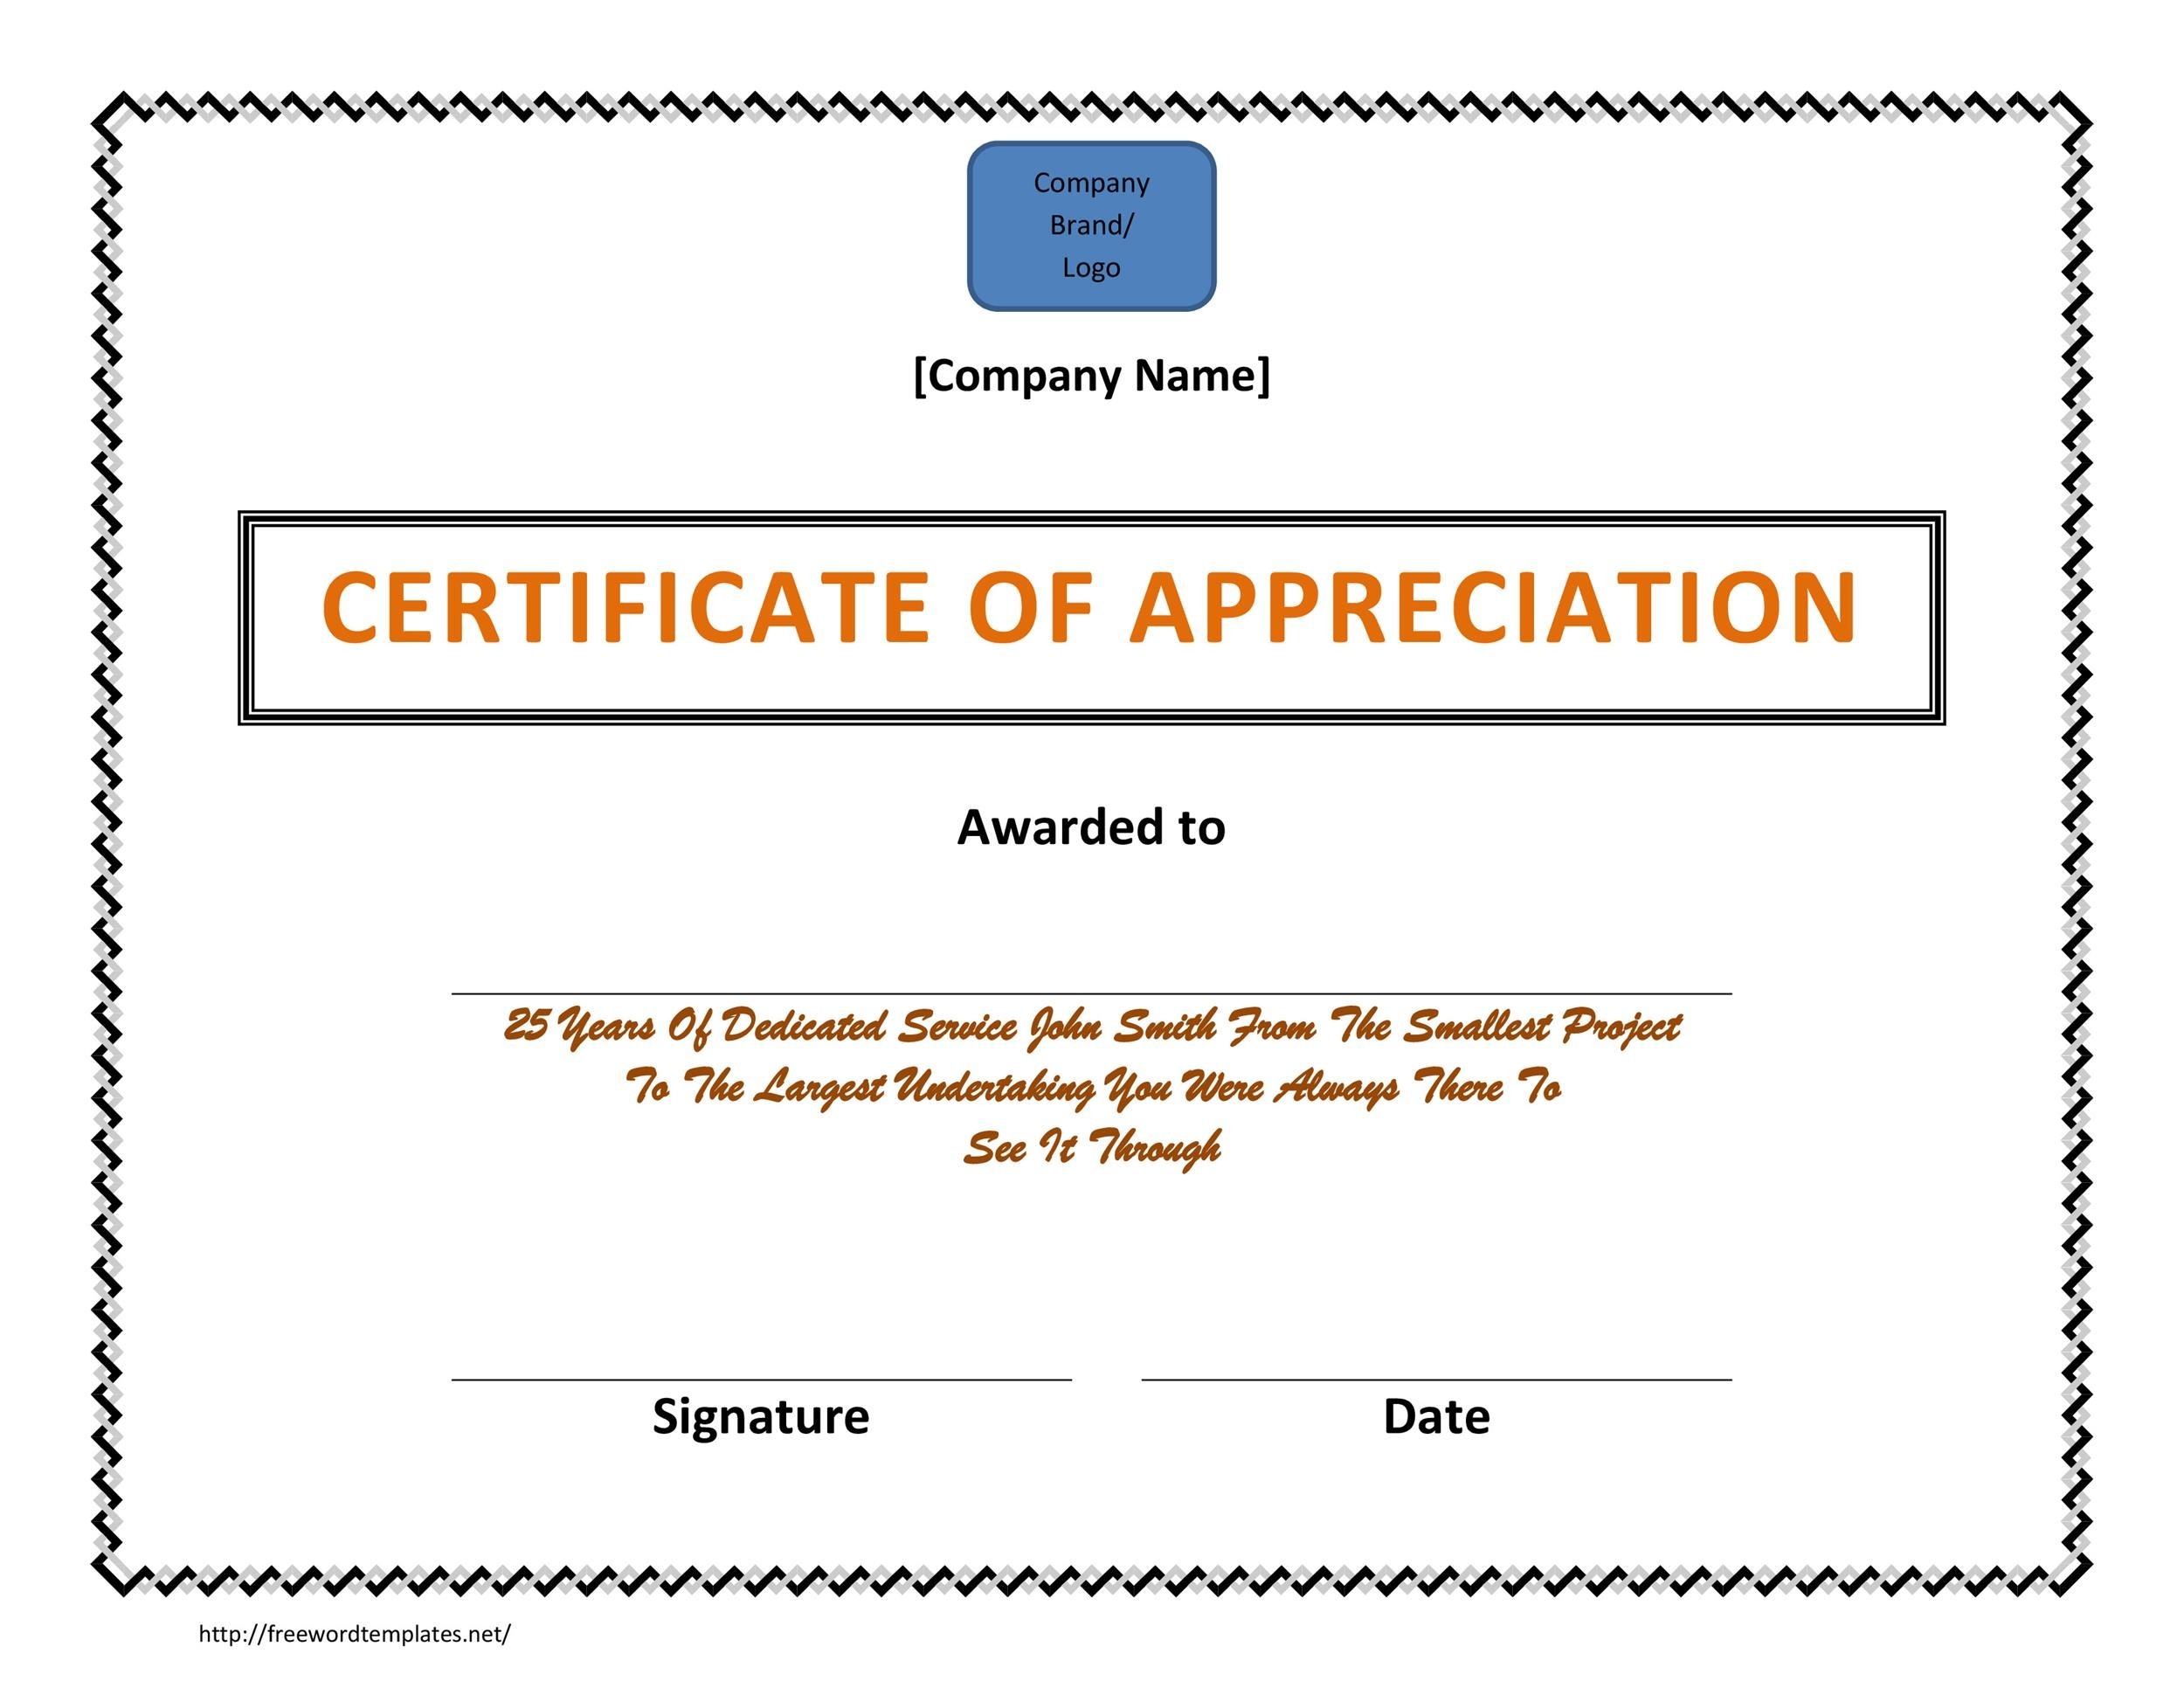 Free certificate of appreciation templates and letters printable certificate of appreciation 05 spiritdancerdesigns Image collections